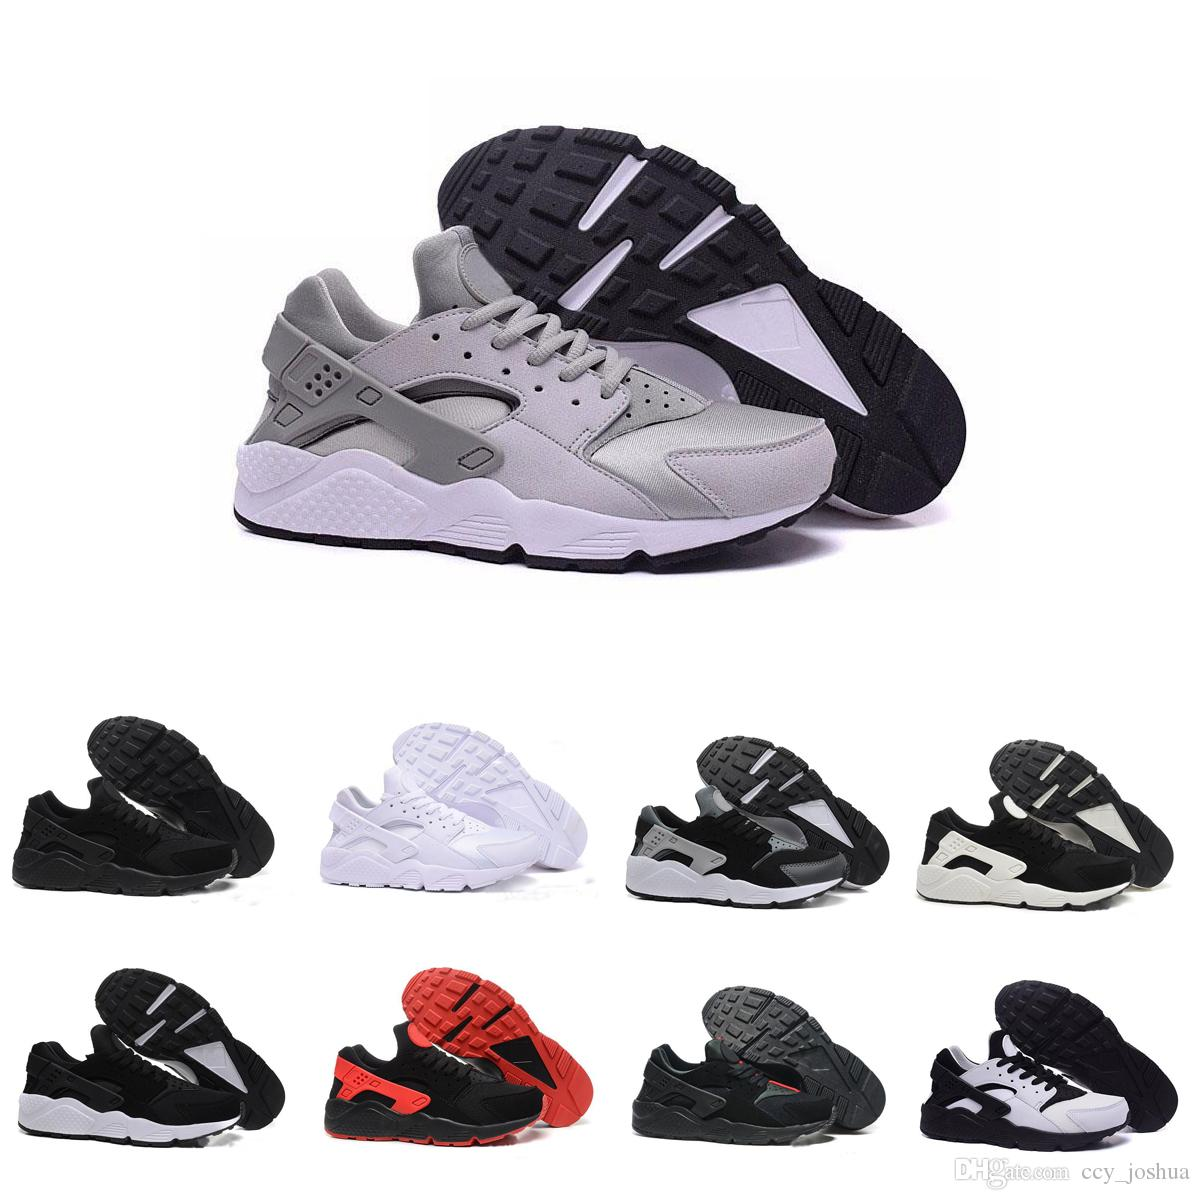 Cheap Air Huarache 2 Ultra Classical All White And Black Huaraches Shoes  Men Women Sneakers Casual Shoes Size 36 45 Online For Sale Green Shoes Most  ... 2bd7015bc